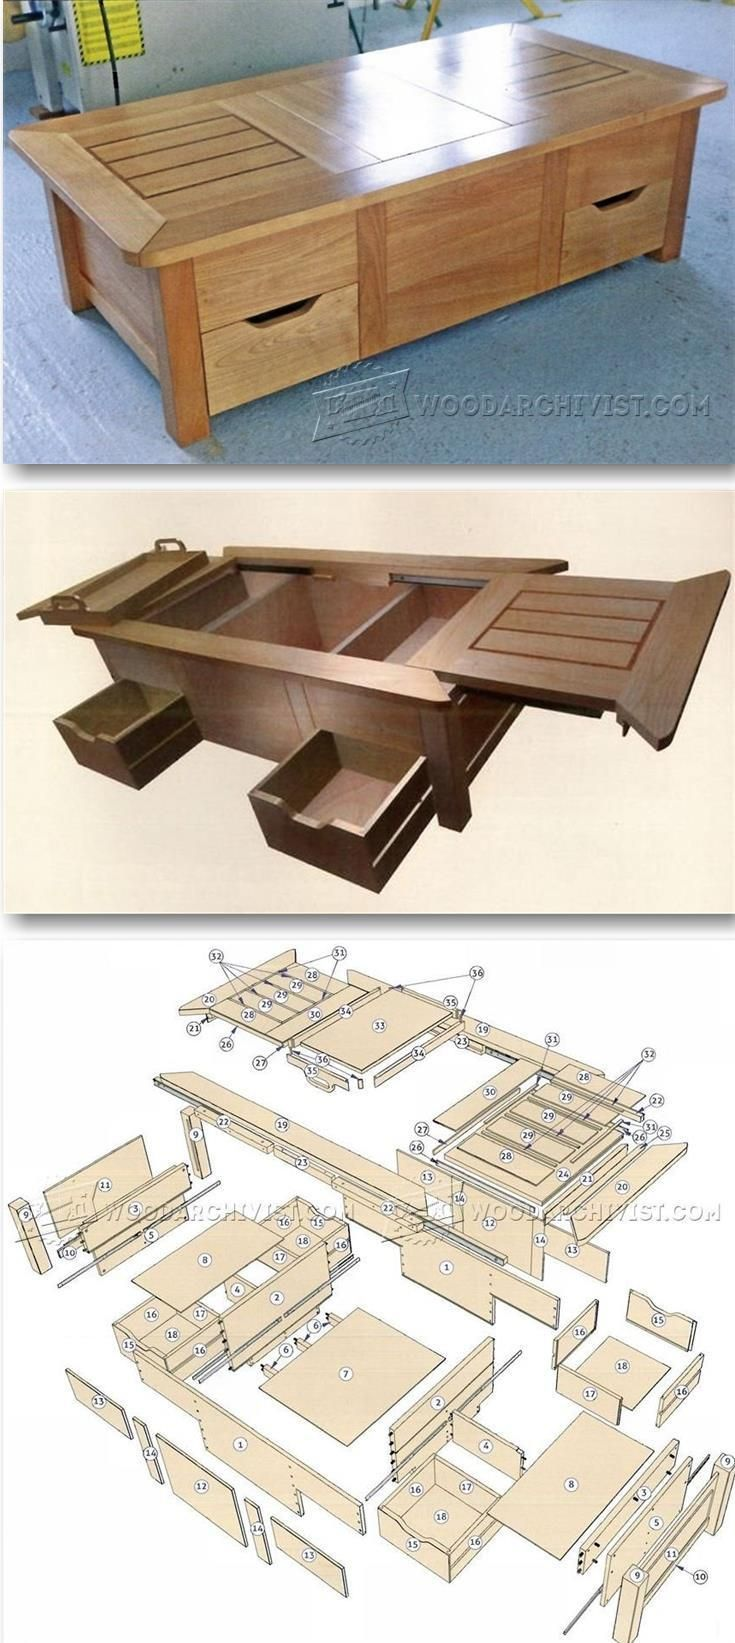 Best 25+ Woodworking Plans ideas on Pinterest | Cool ...